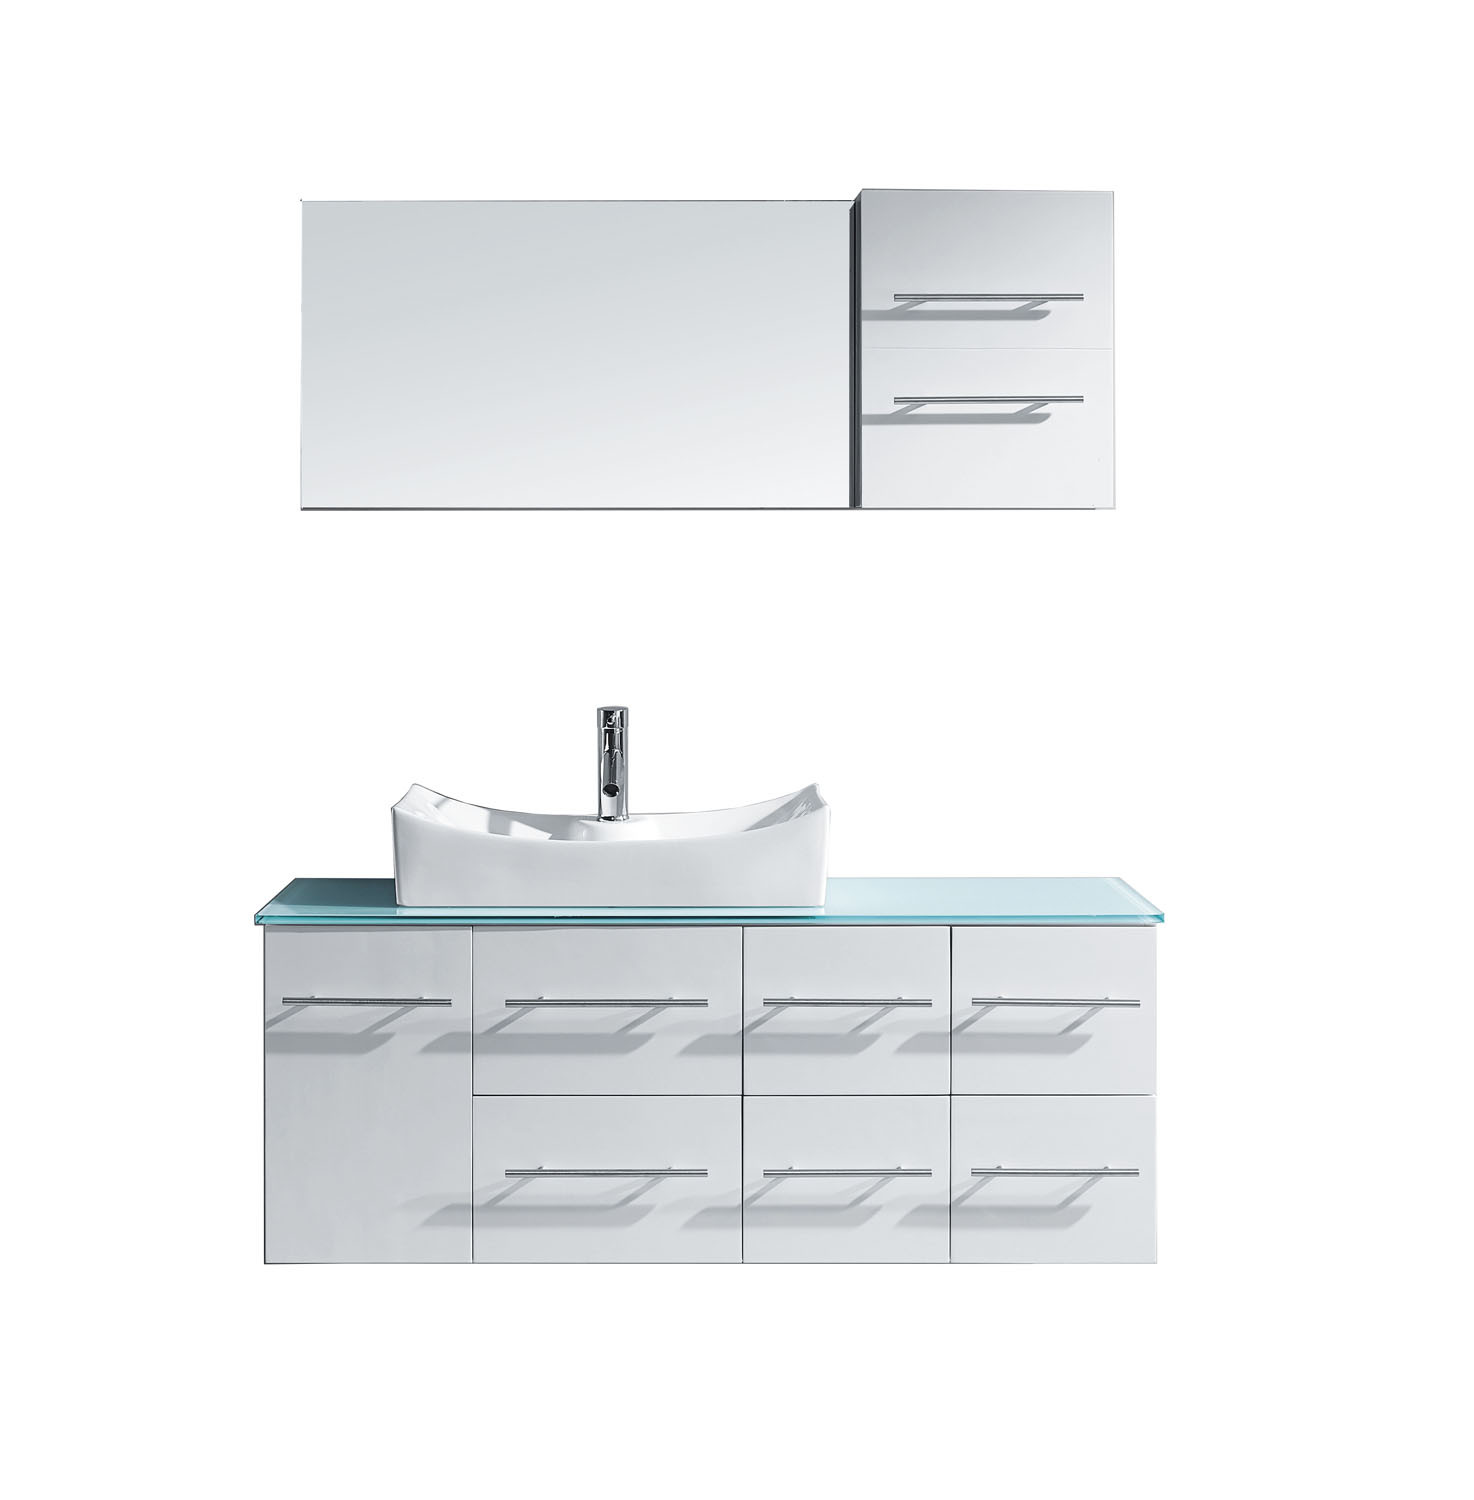 Virtu MS-430-G-WH-001 Ceanna 55 Inch Single Bathroom Vanity Set With Glass Top